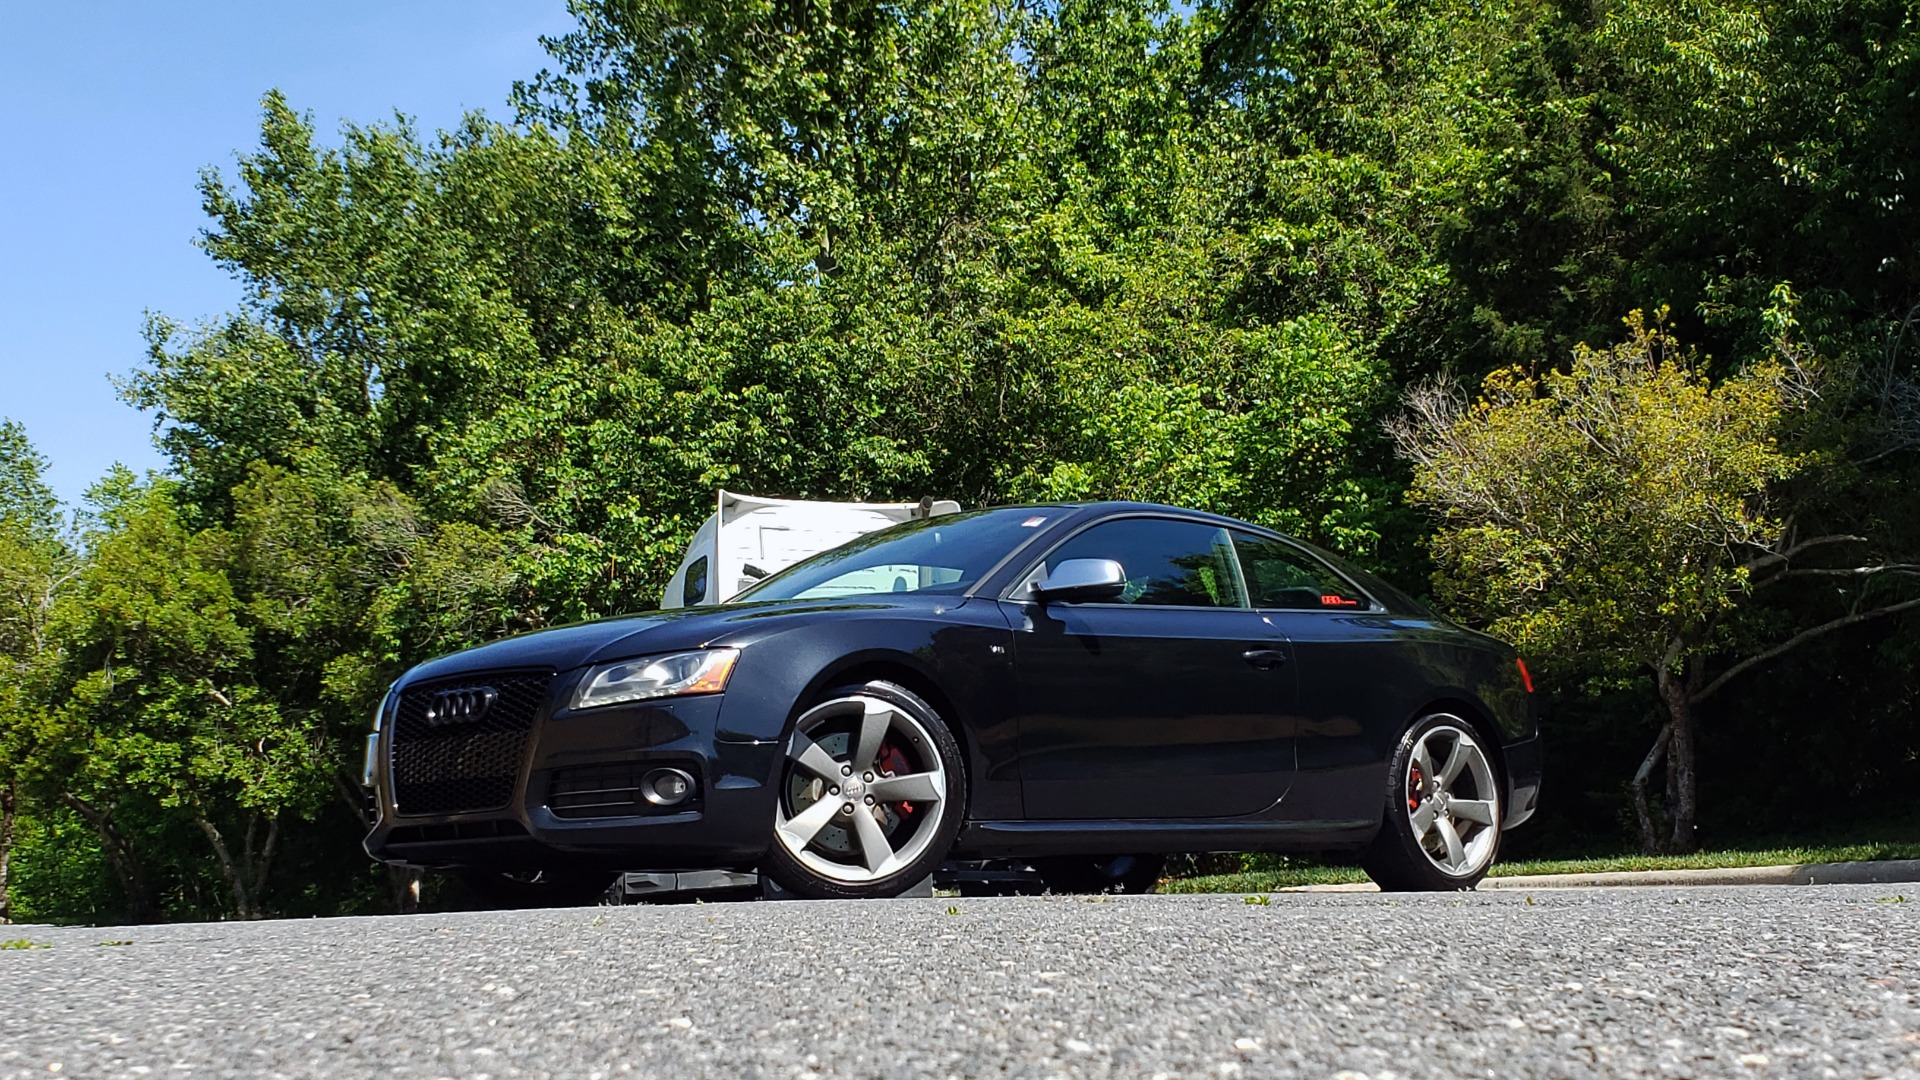 Used 2011 Audi S5 PREMIUM PLUS / AVENGERS COUPE / NAV / SUNROOF / REARVIEW for sale Sold at Formula Imports in Charlotte NC 28227 35